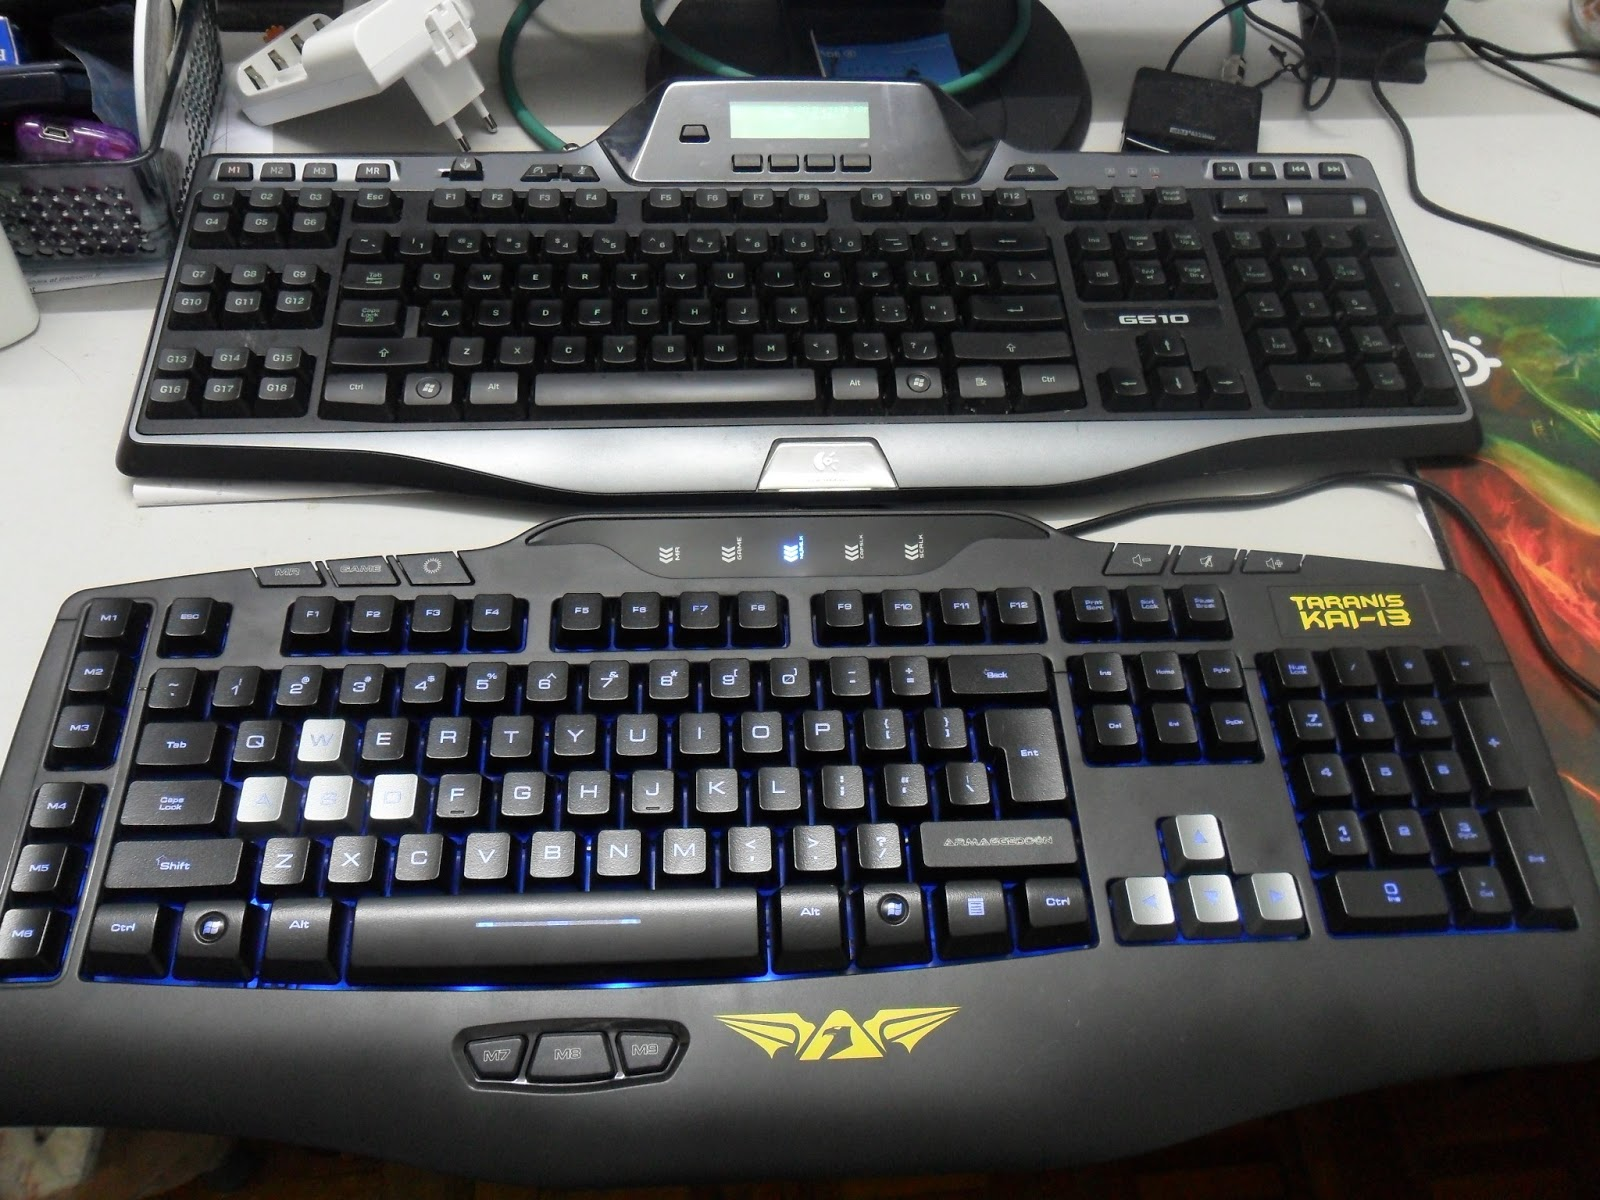 Unboxing & Review: Armaggeddon Taranis Kai-13 Gaming Keyboard 62